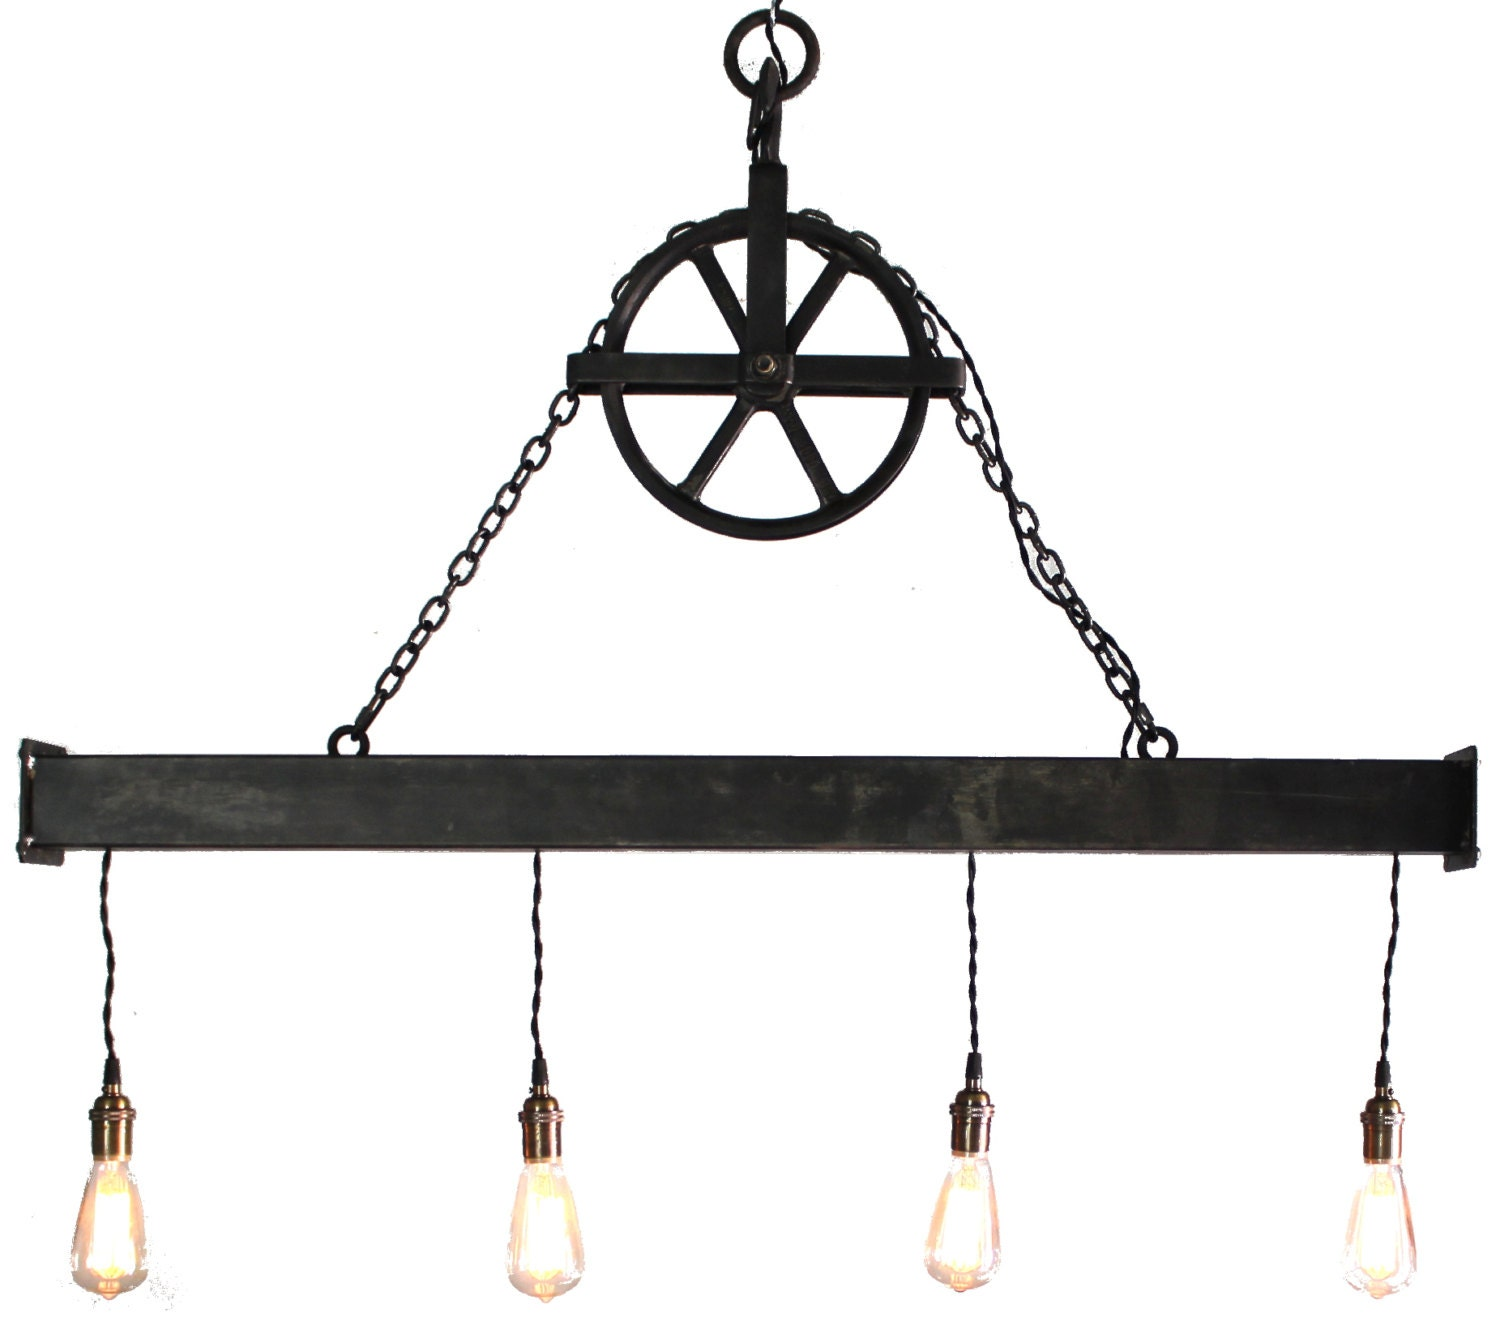 4 light steel beam chandelier with aged pulley handcrafted 4 light steel beam chandelier with aged pulley arubaitofo Choice Image